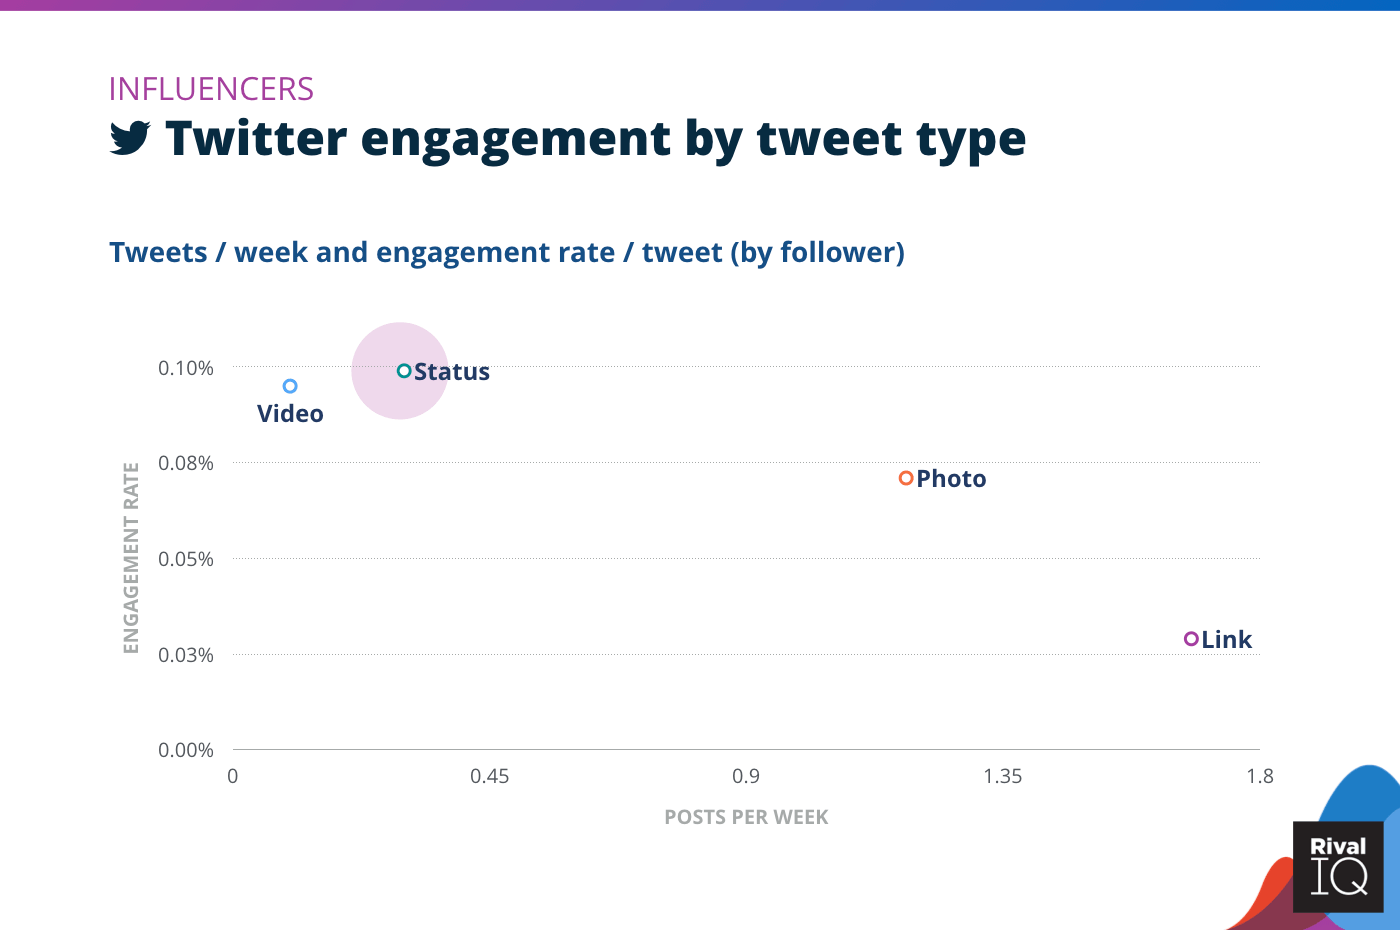 Chart of Twitter posts per week and engagement rate by tweet type, Influencers